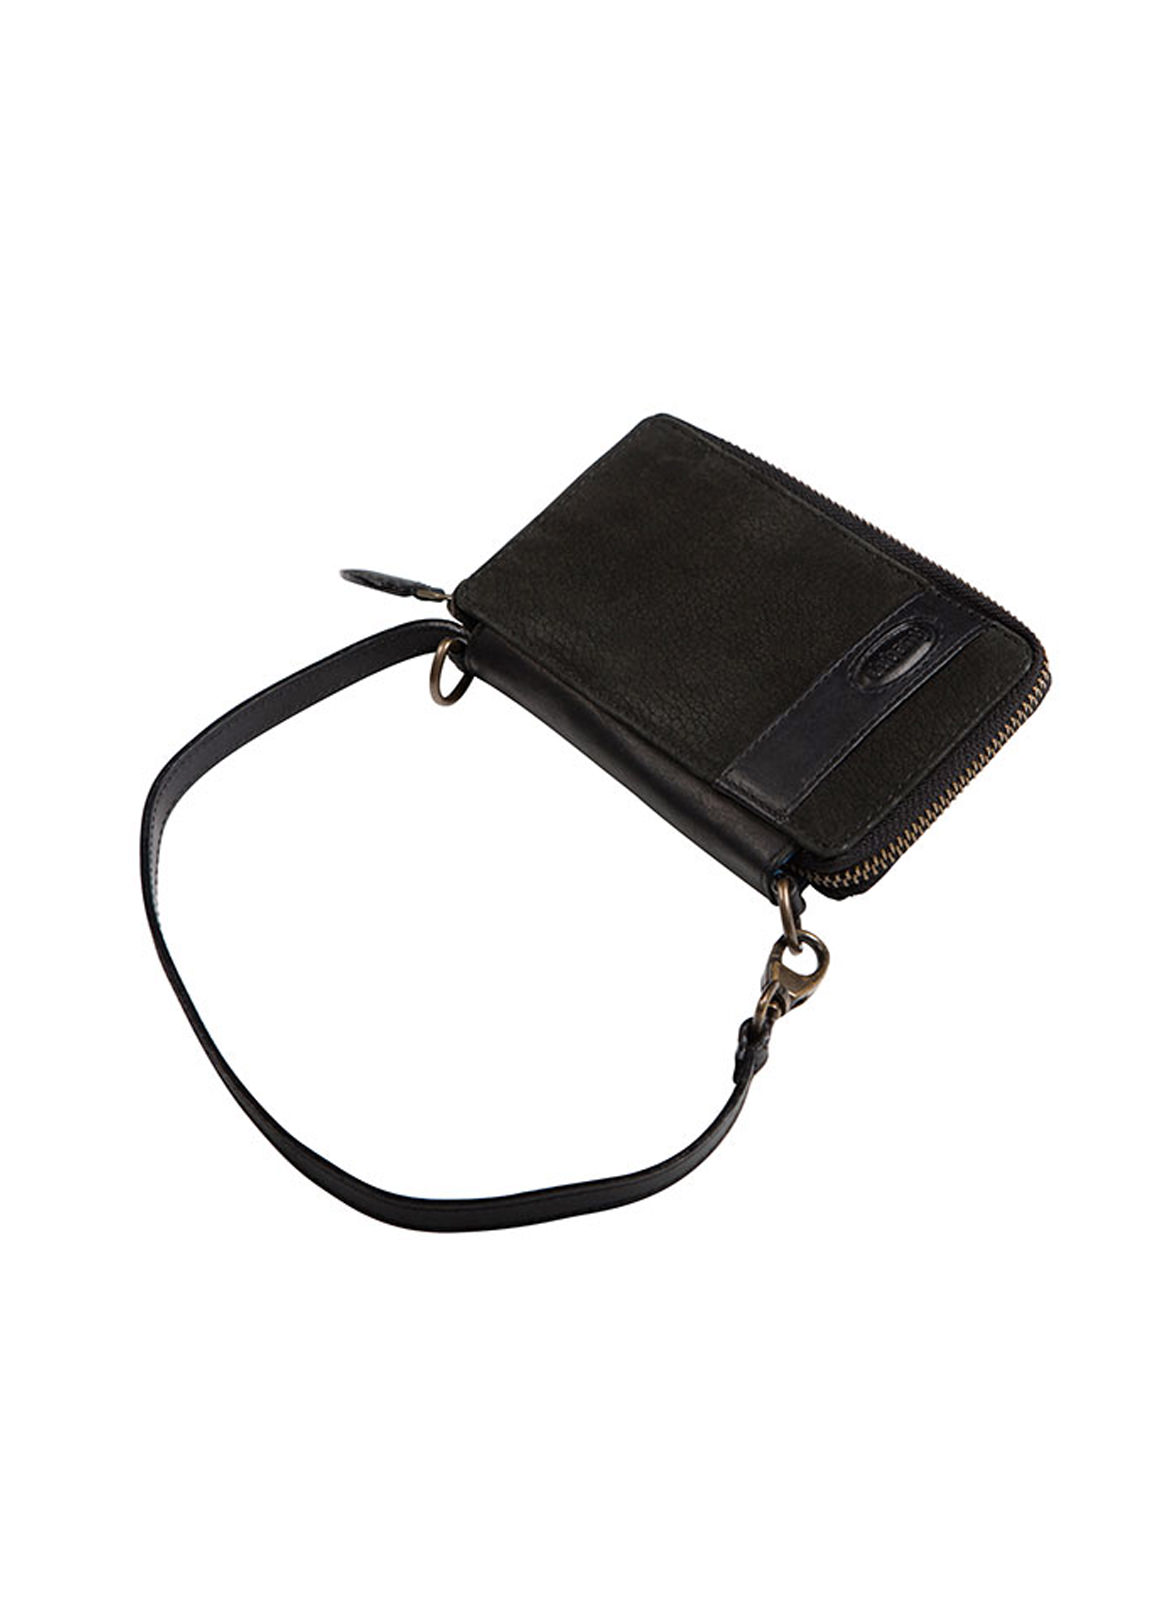 Emyvale Leather Purse and Phone Case - Black